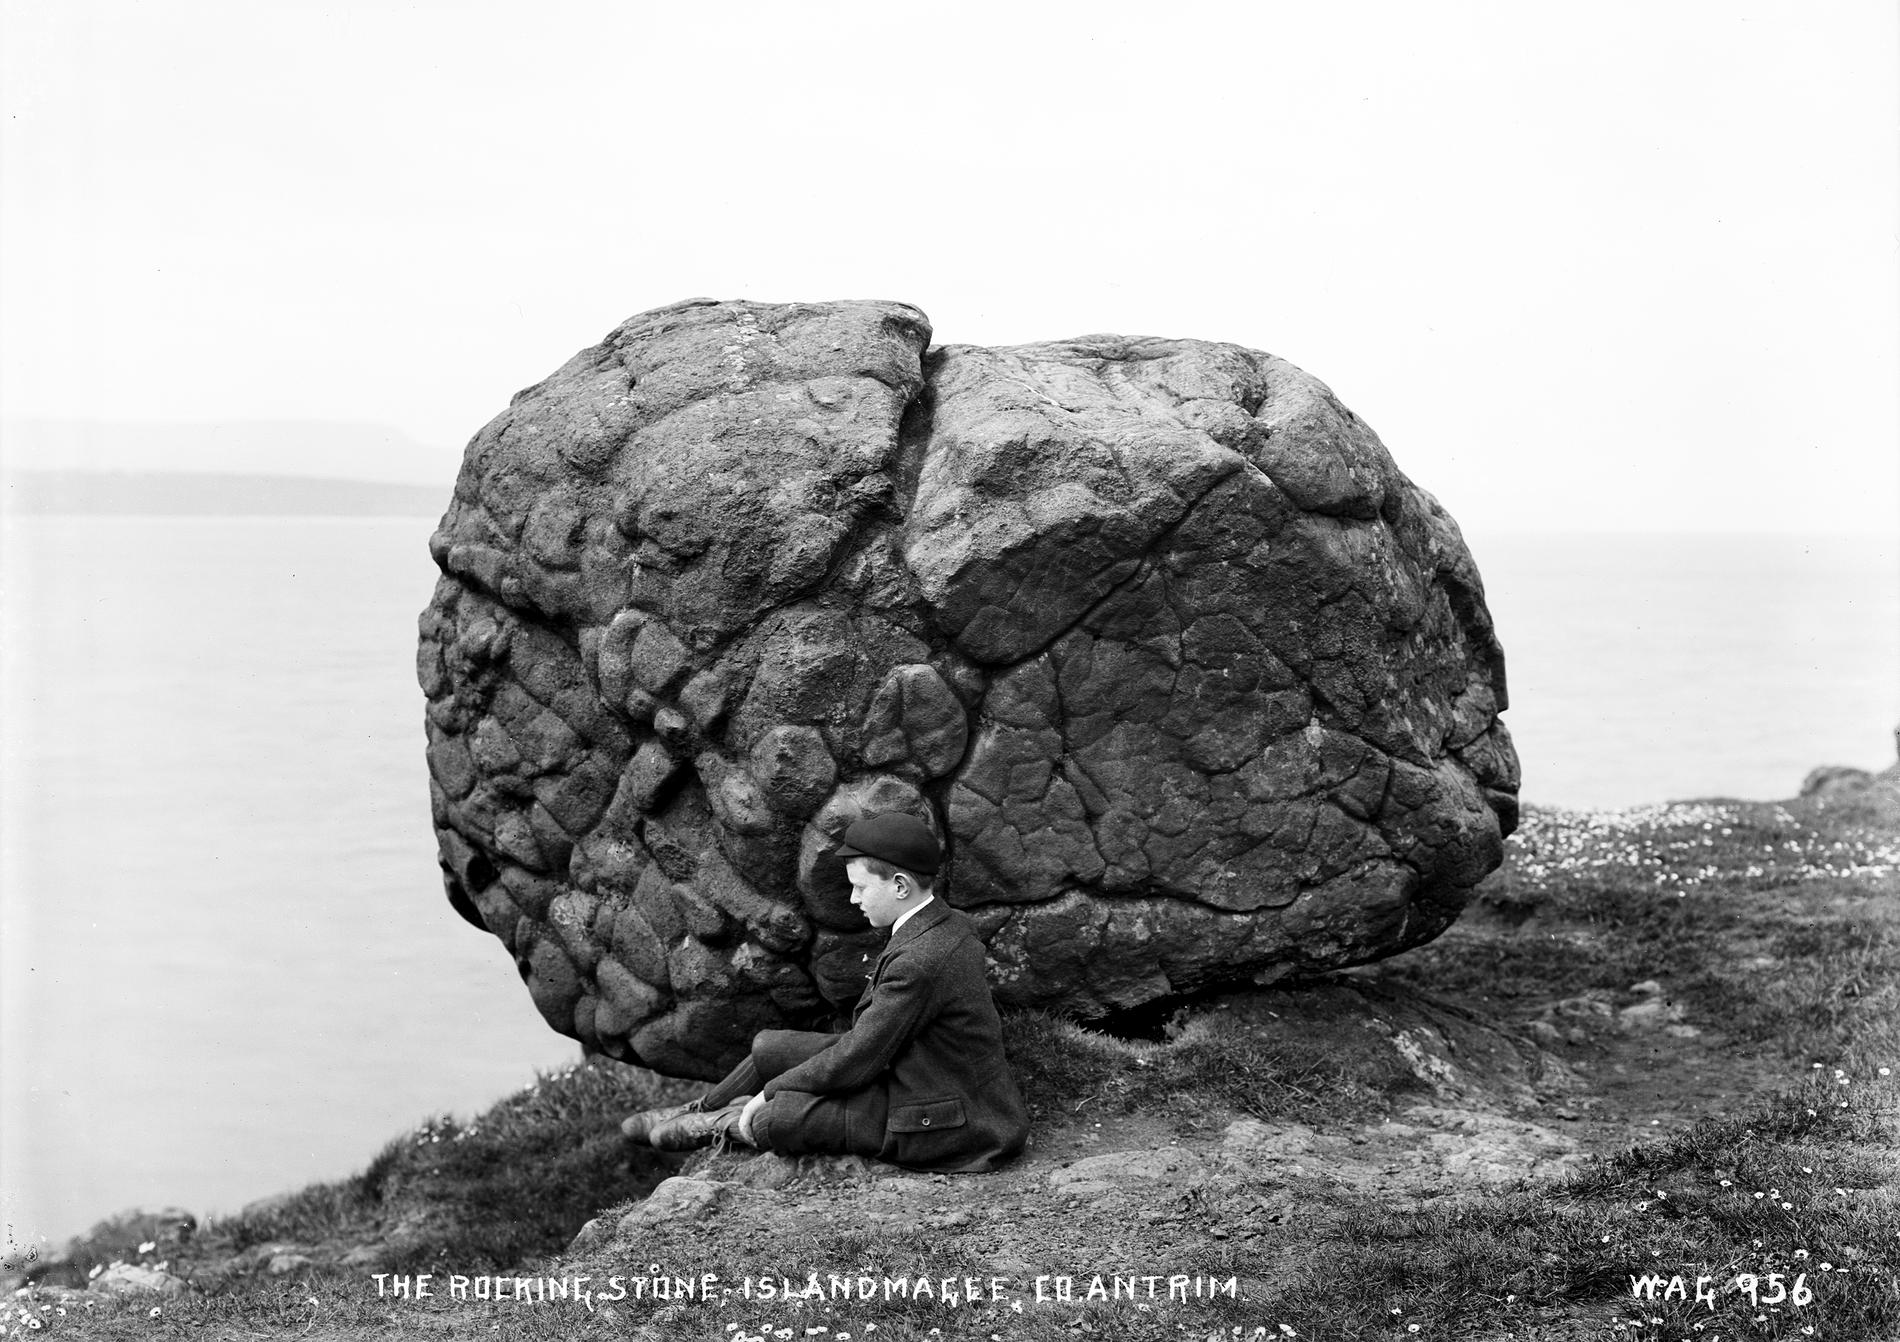 THE ROCKING STONE, ISLANDMAGEE, CO. ANTRIM (Photograph; glass plate negative)